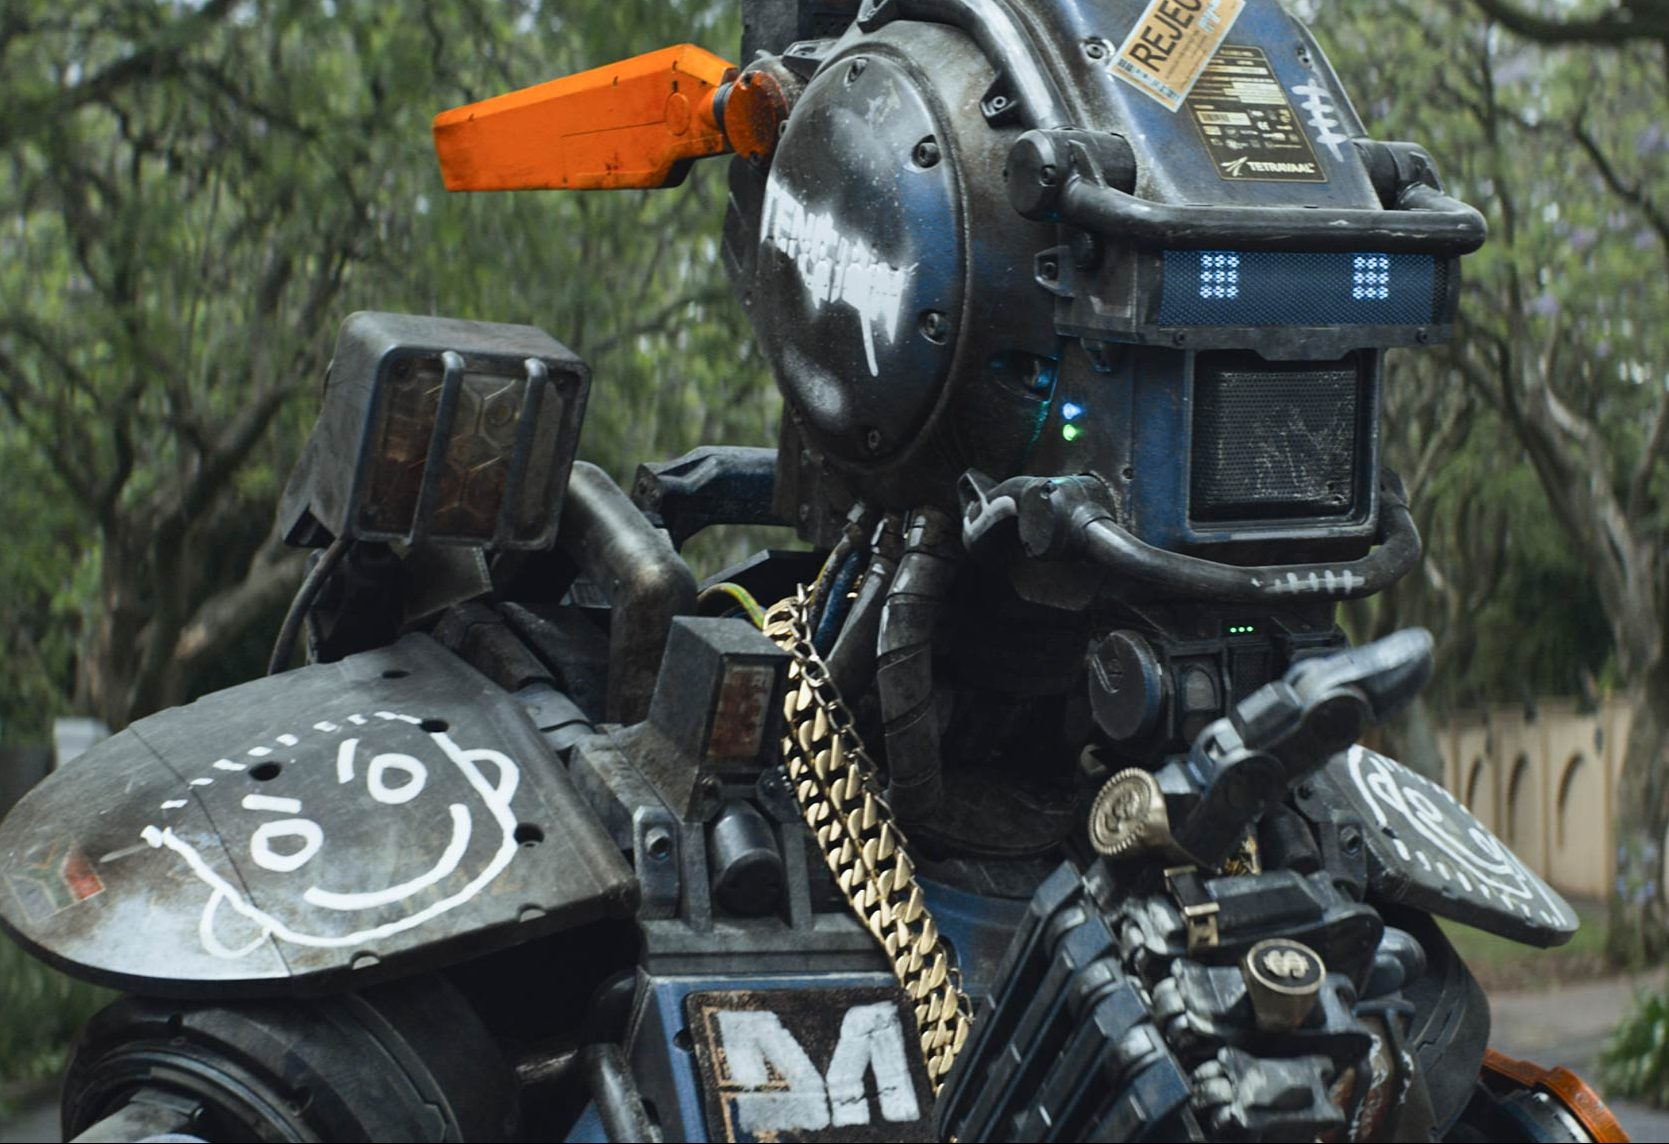 chappie2 e1623943018706 The Best (And Worst) Movie Robots